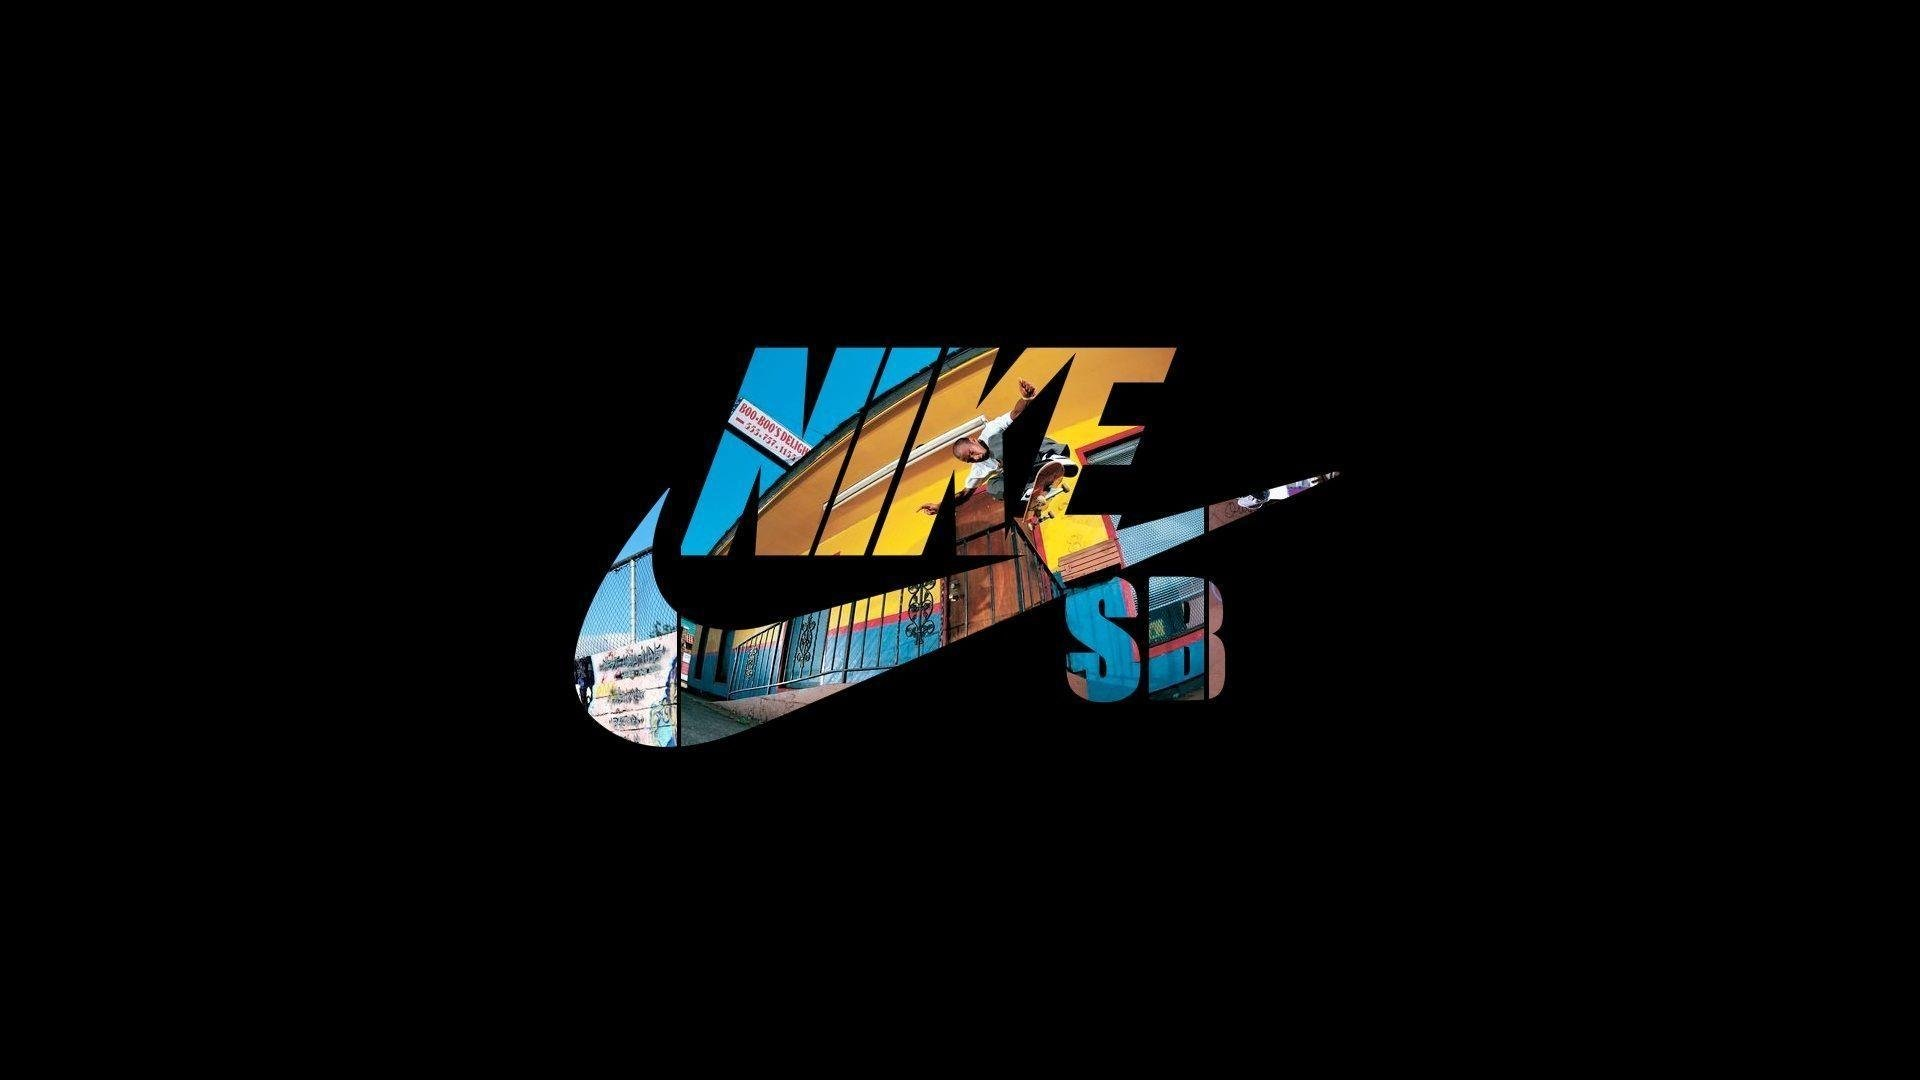 Nike wallpapers just do it wallpaper cave wallpaper logo nike just do it hd desktop 9 hd wallpapers hdwalljoy voltagebd Choice Image